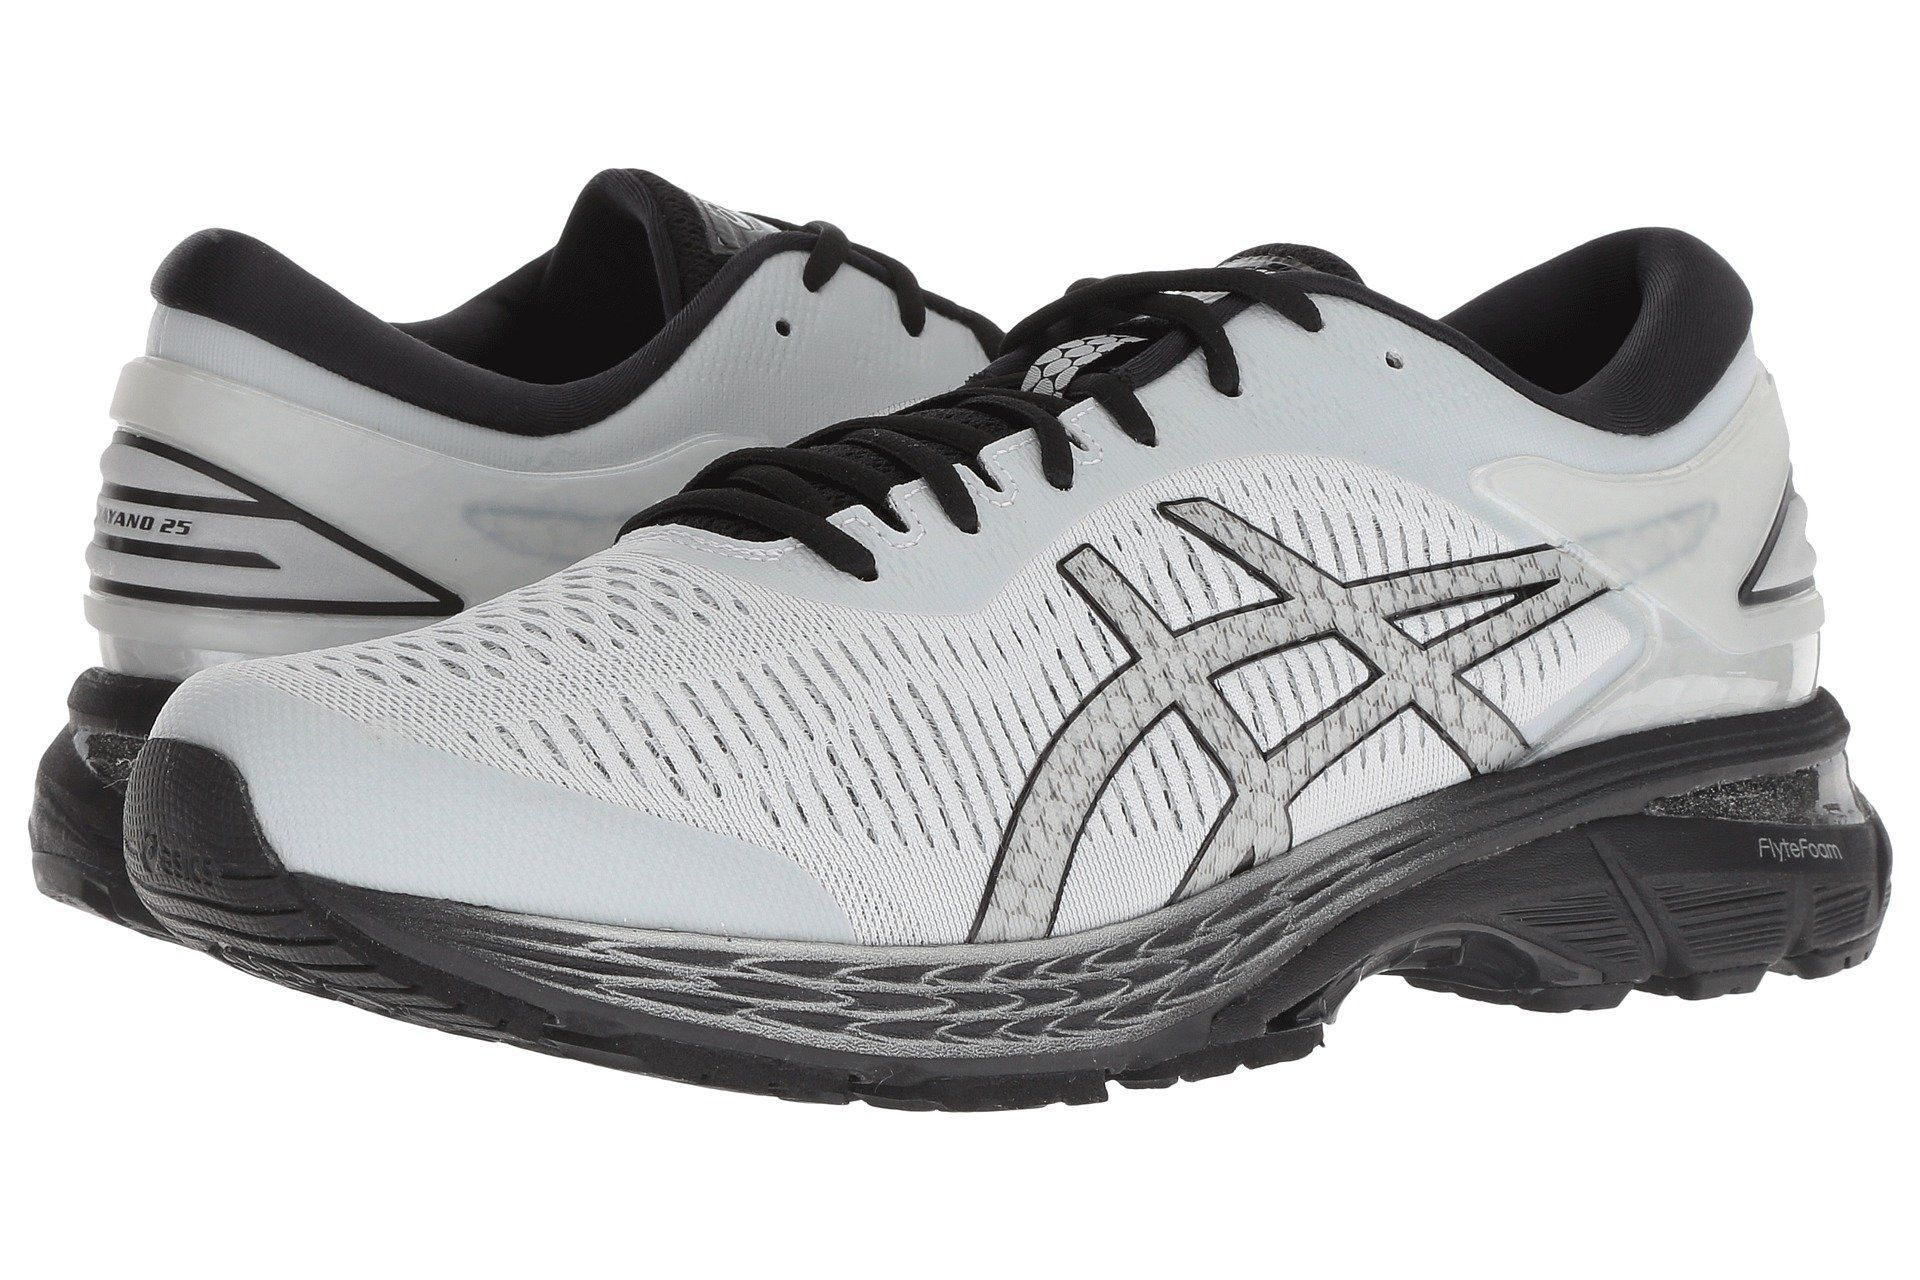 2019 Fashion Hot MENS ASICS GEL KAYANO 25 Sports sneakers running shoes Best